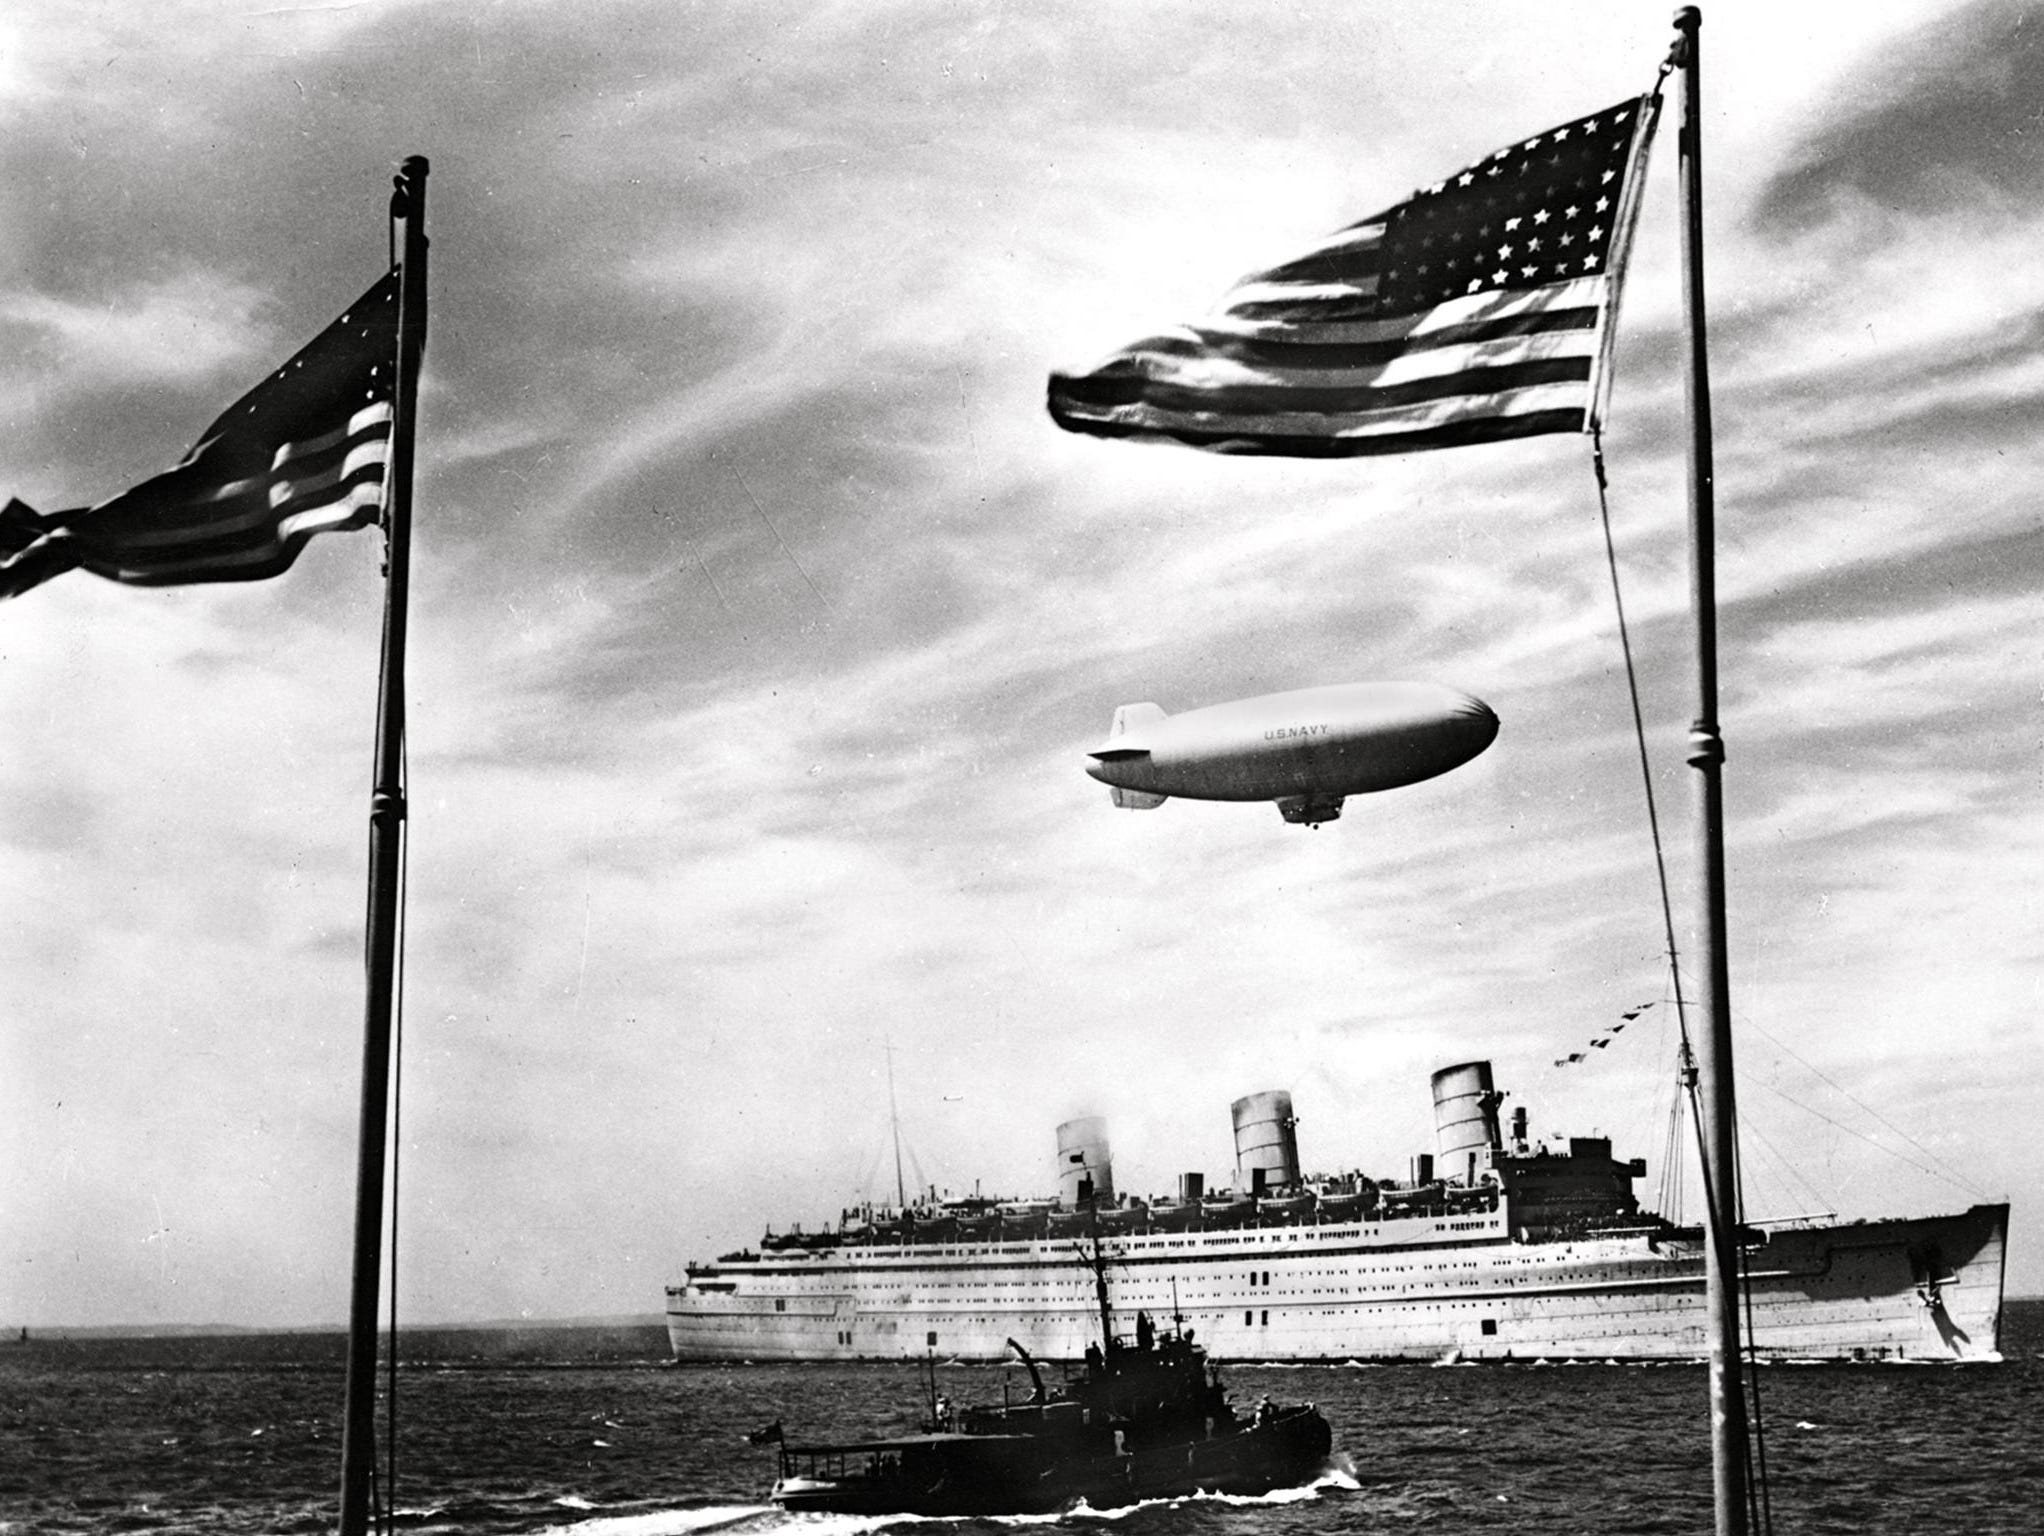 Well into 1946, the two celebrated ships, credited by Winston Churchill with shortening the war by a year, continued their trooping and repatriation duties. During this phase of its career, the Queen Mary was nicknamed 'The Grey Ghost.'